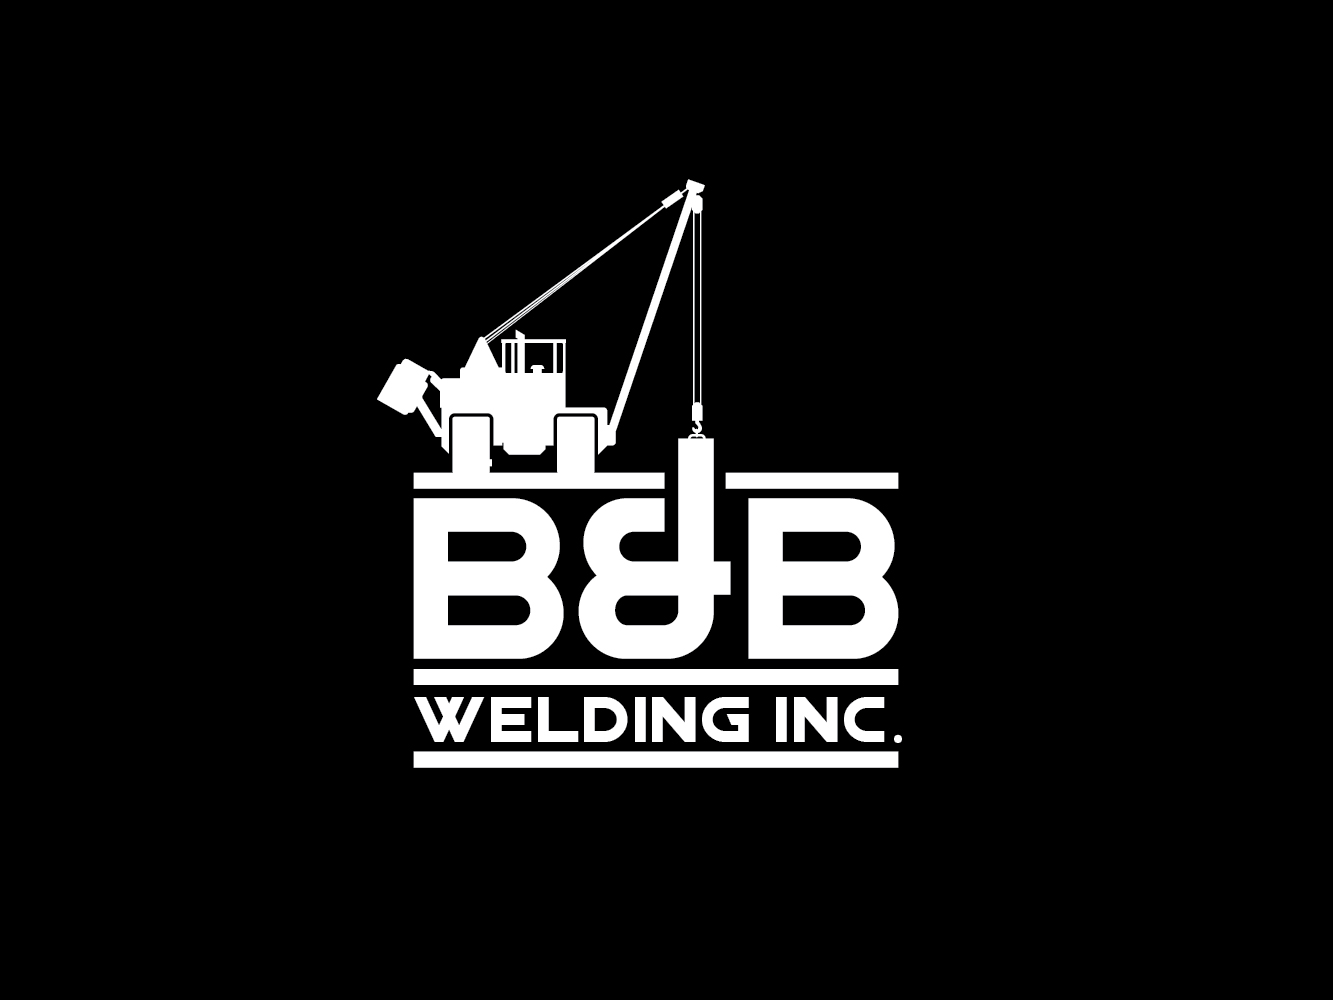 Logo Design by Cutris Lotter - Entry No. 21 in the Logo Design Contest Fun Logo Design for B&B Welding Inc..